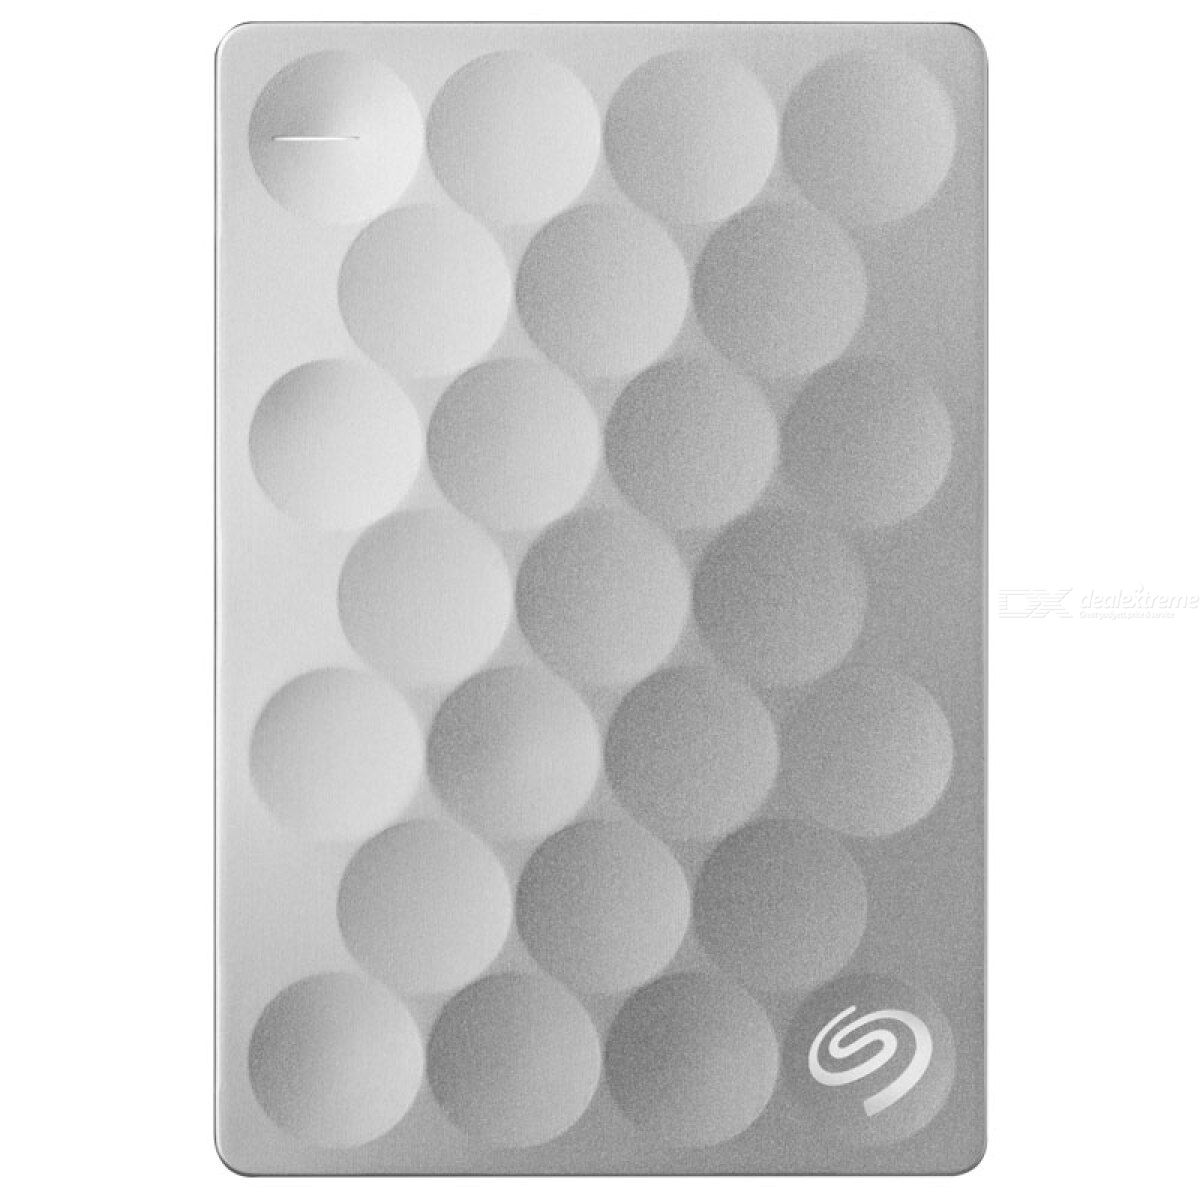 Seagate STEH2000300 Backup Plus 2.5quot Ultra Slim 2TB HDD Hard Disk Drive (Sliver)